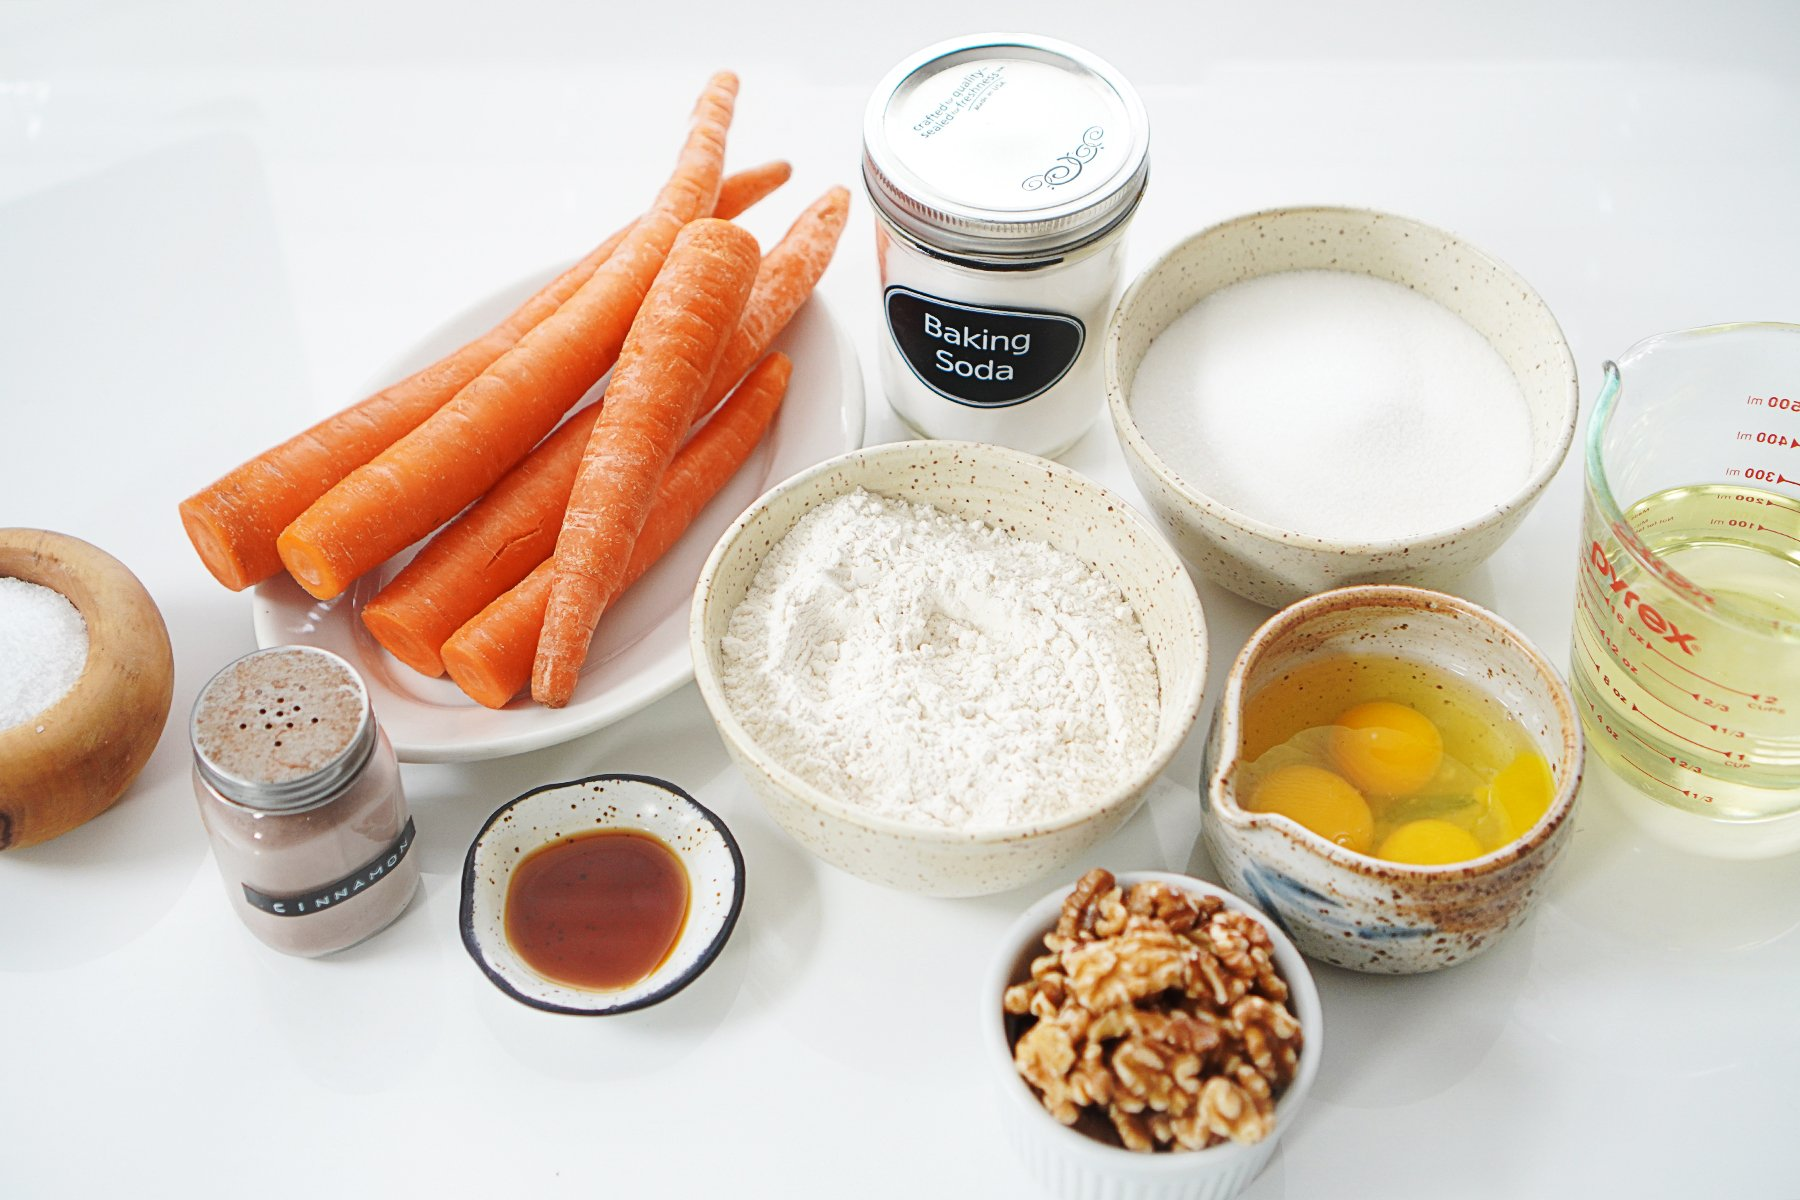 Ingredients on a white table: whole carrots, flour, sugar, eggs, oil, walnuts, cinnamon and vanilla